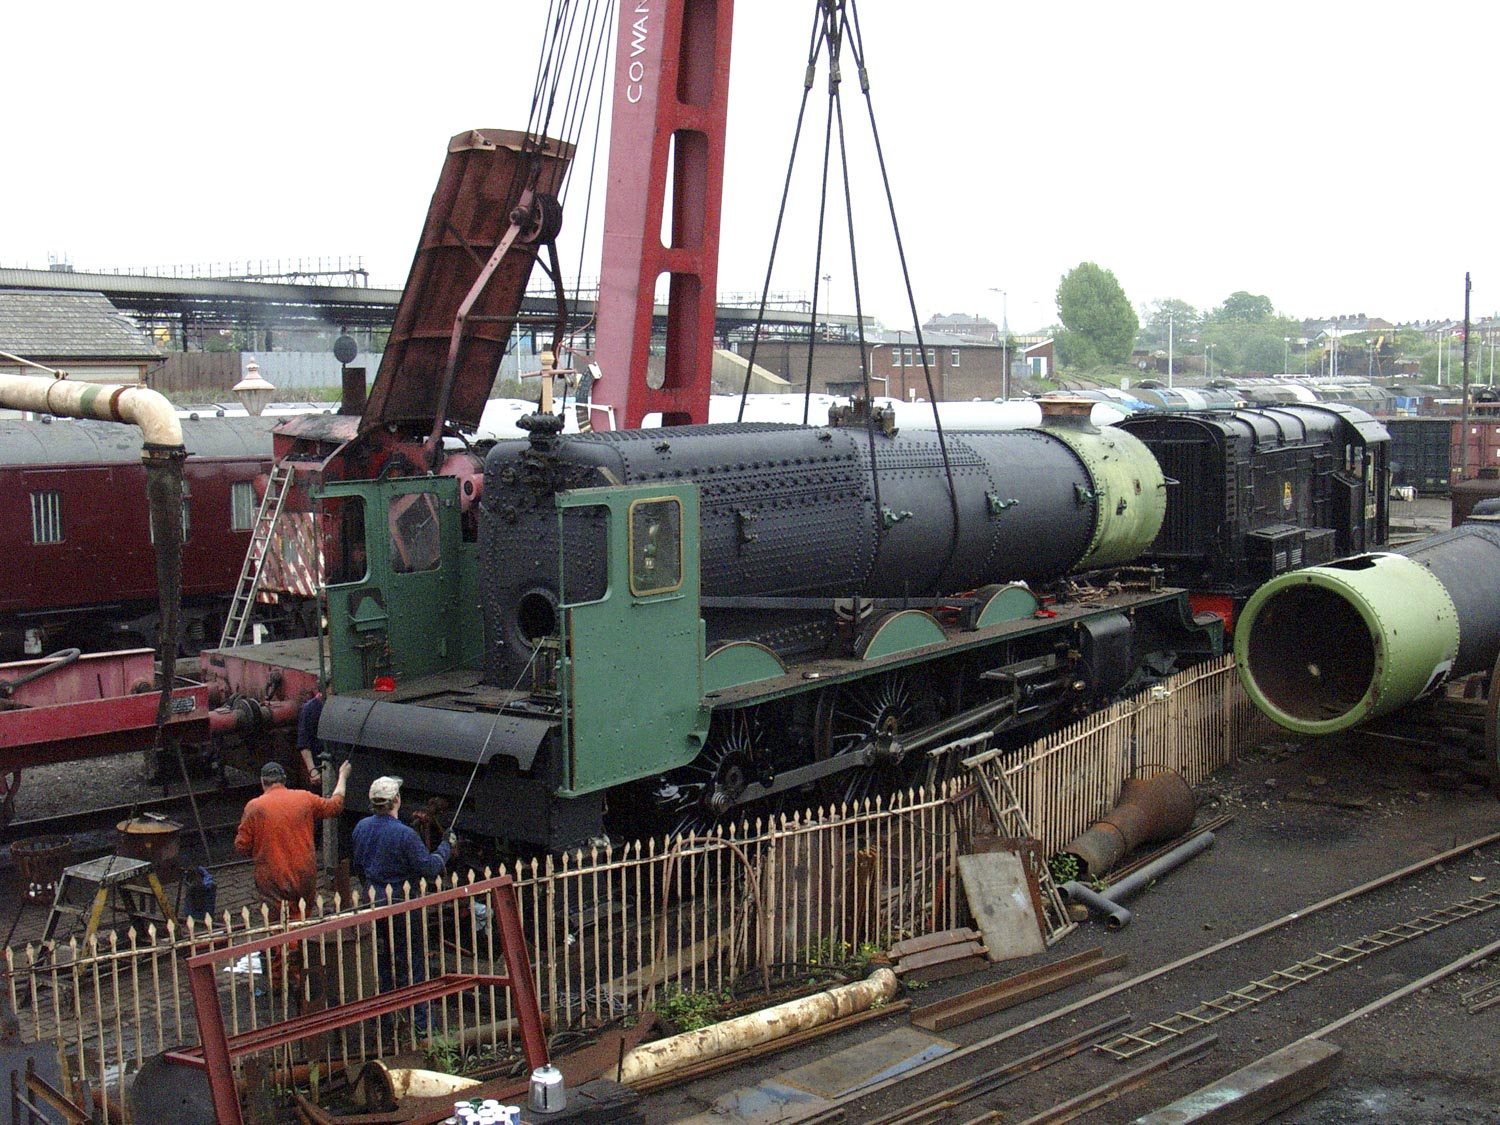 The overhauled boiler goes back in the frames at Tyseley with the aid of the steam crane, 11 May 2004. © Martyn Bane